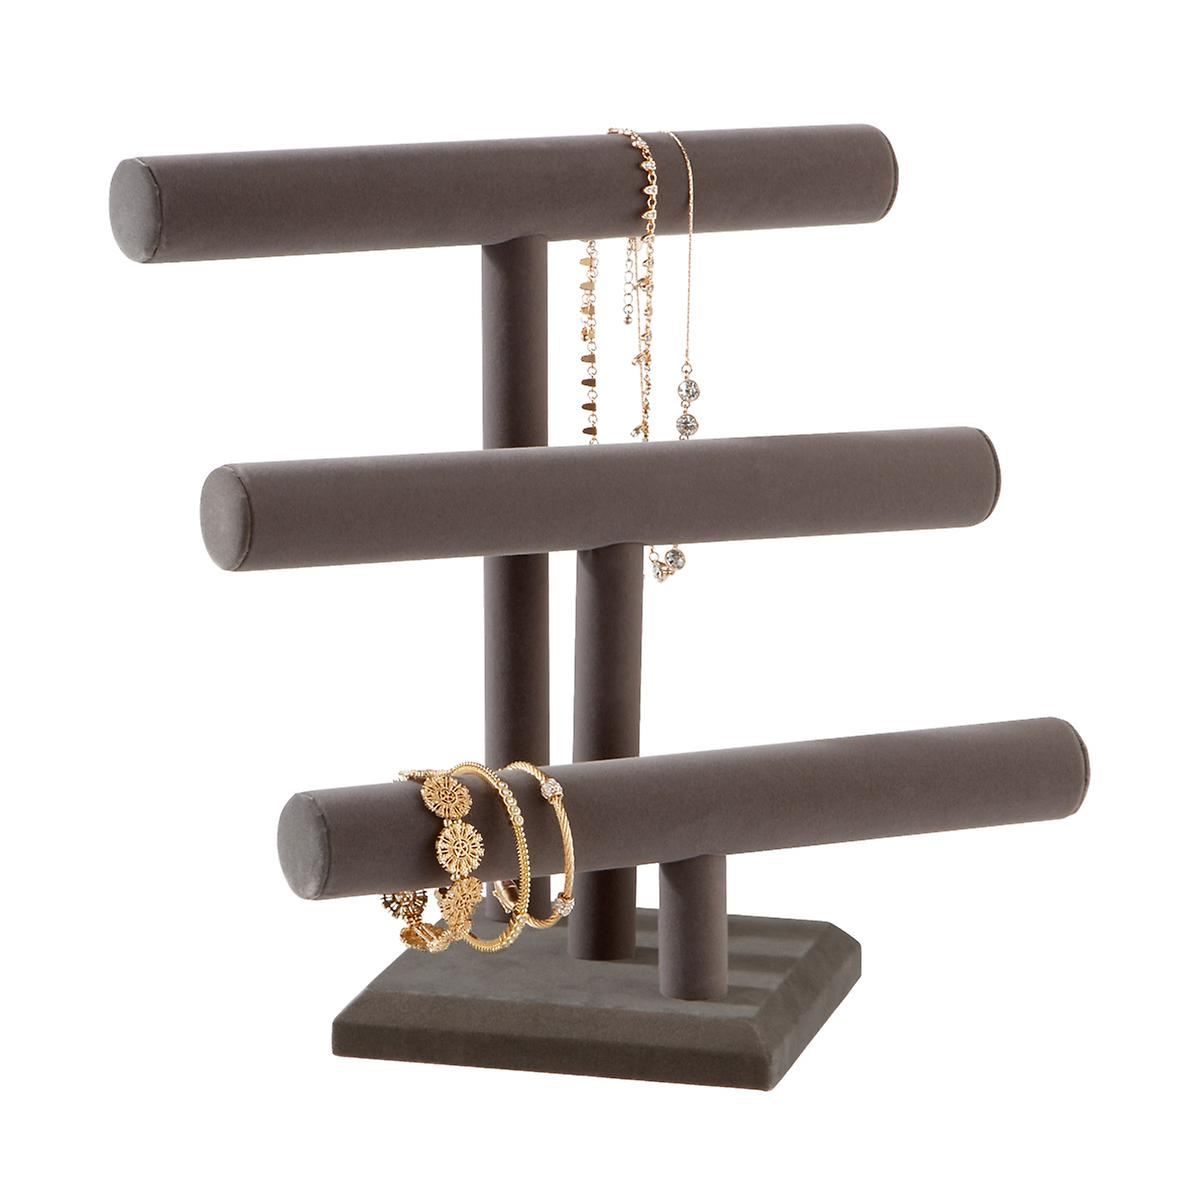 Triple Tiered Jewelry Organizer The Container Store